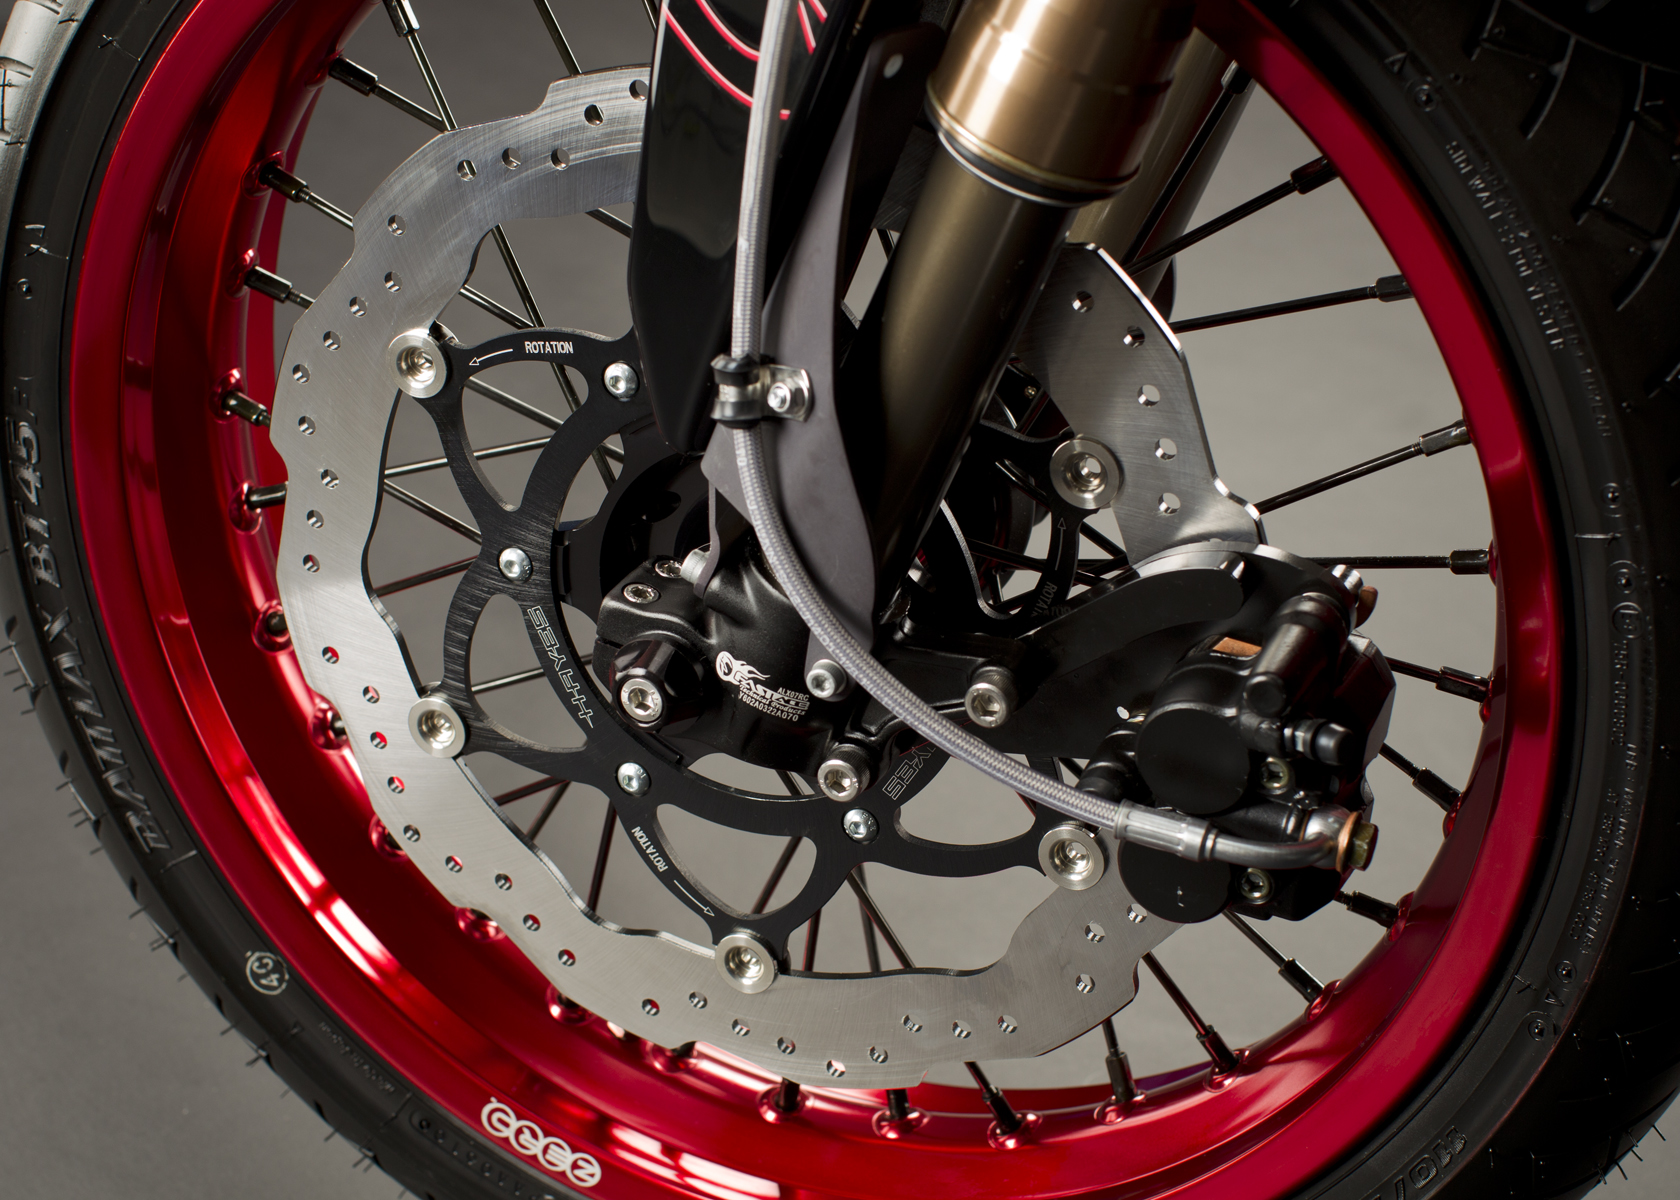 2011 Zero S Electric Motorcycle: Front Brake